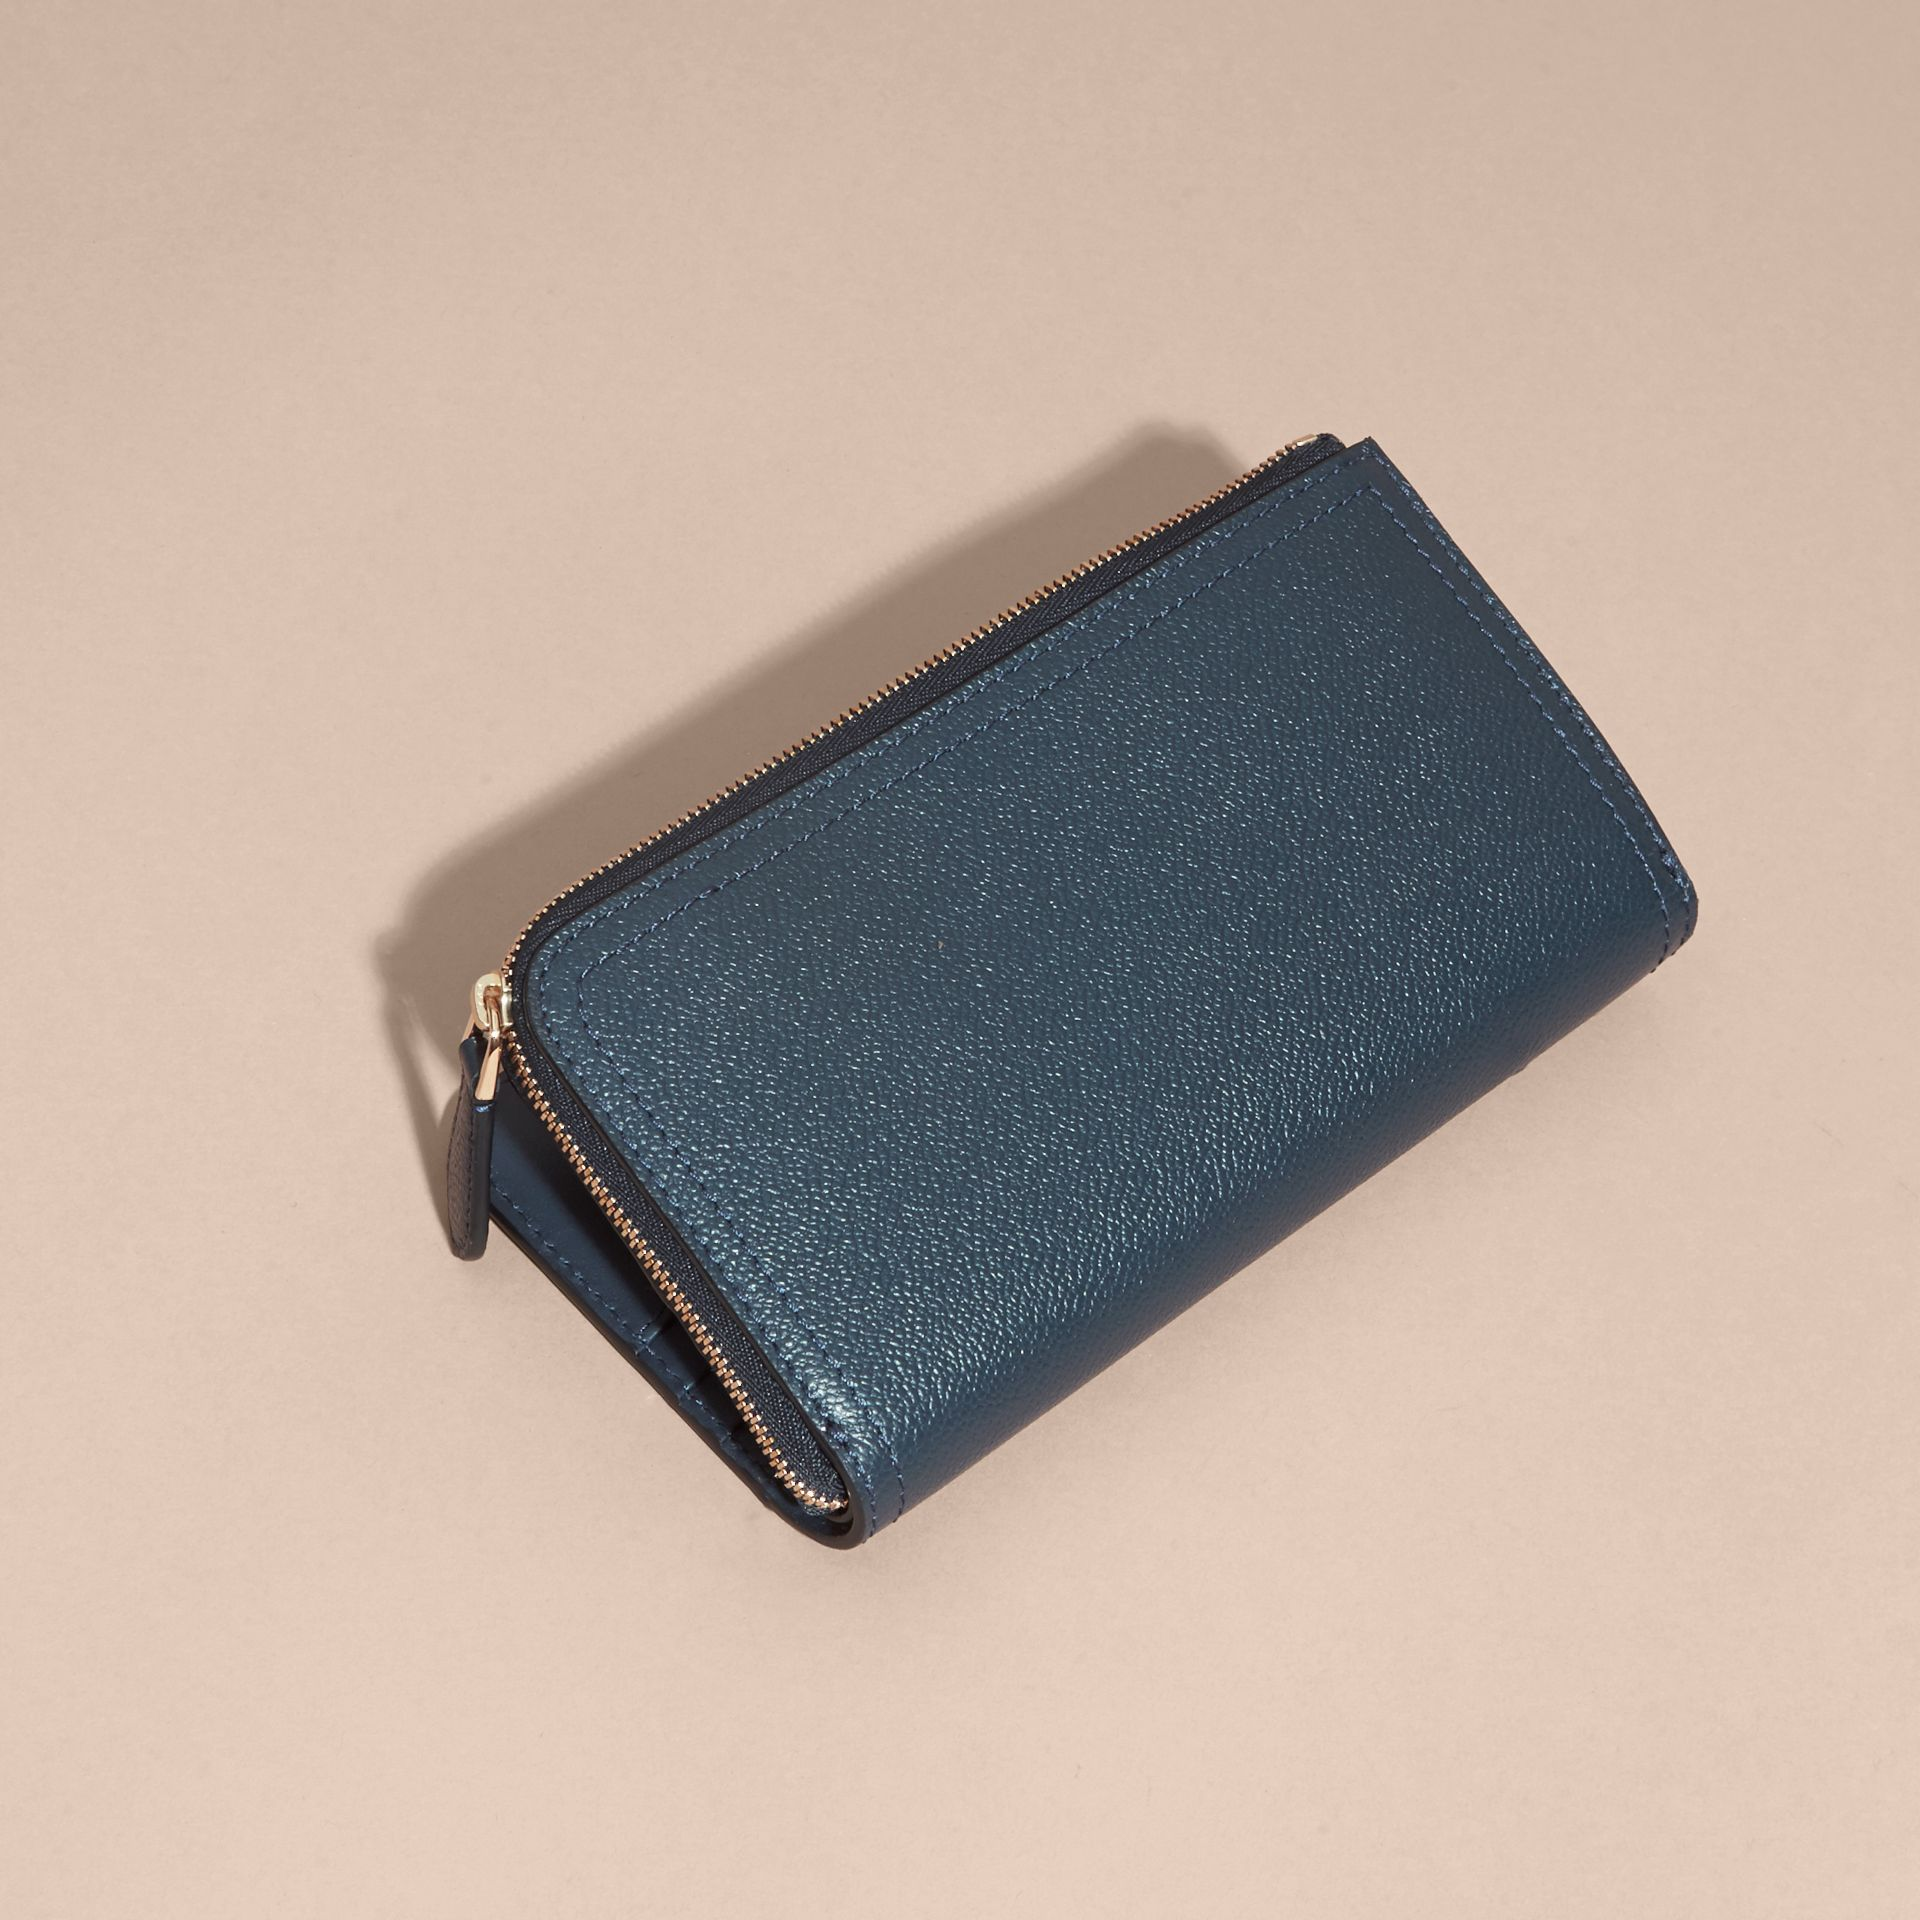 Grainy Leather Ziparound Wallet in Blue Carbon - Women | Burberry Canada - gallery image 4